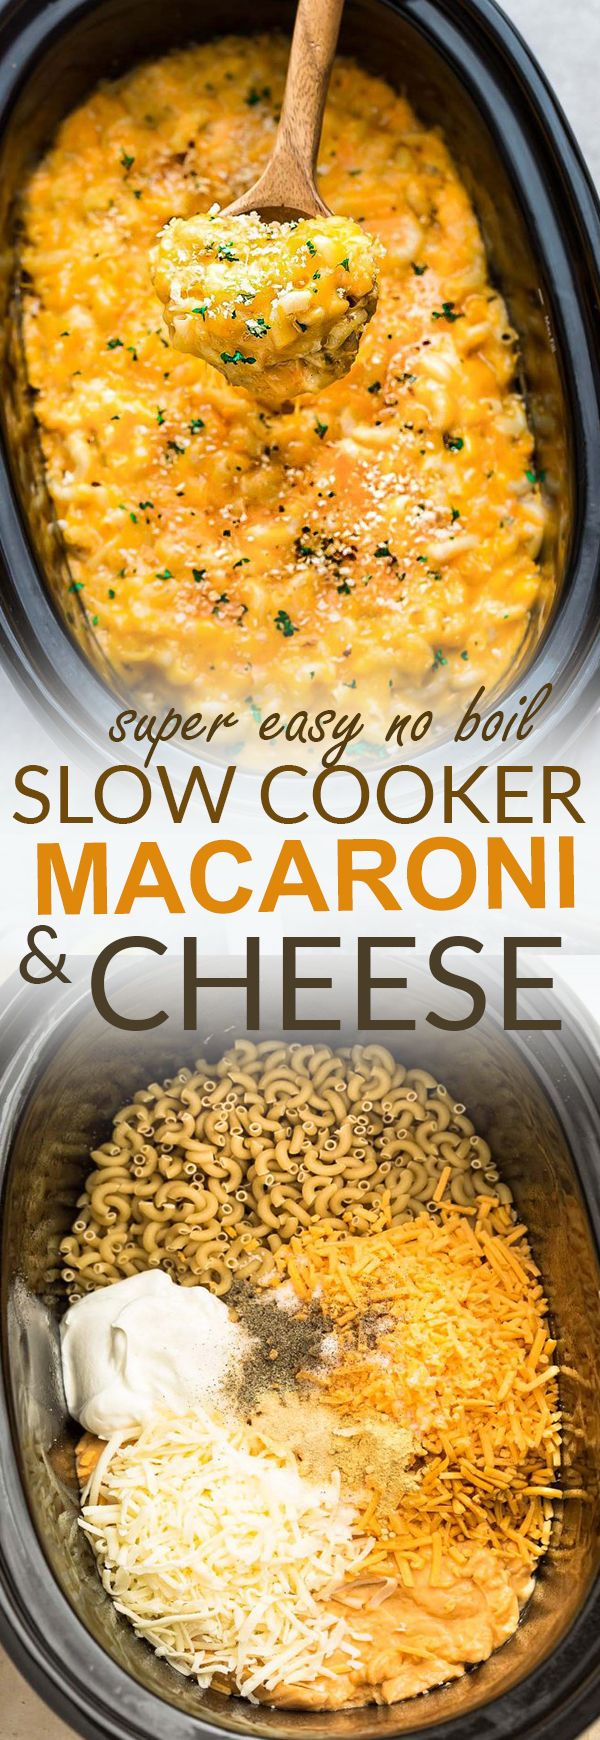 This super creamy Slow Cooker Macaroni & Cheese is a super easy no boil dump and go recipe and is the perfect easy weeknight meal. Best of all, made entirely in the crock-pot with a mix of three popular cheeses: sharp cheddar, Mozzarella and Provolone and topped with a crispy Panko crumb topping. No oven or boiling on the stove required - super easy and perfect for potlucks, barbecues and camping. #slowcooker #macandcheese #onepot #comfortfood #cheese #pasta #skip #kraftdinner #bluebox